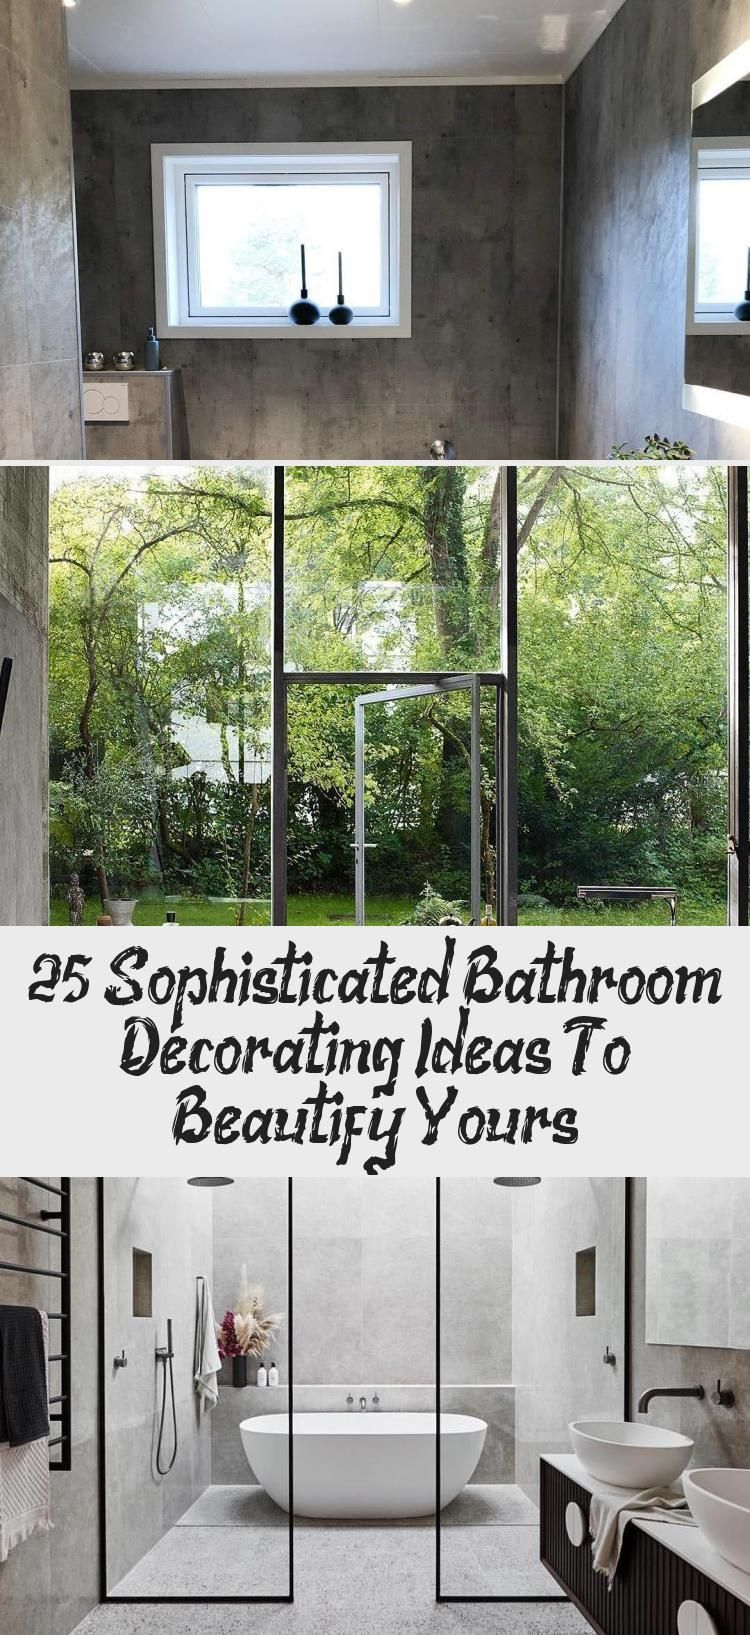 25 Sophisticated Bathroom Decorating Ideas to Beautify Yours  #bathroom #homedecor #bathroomideasSmall #bathroomideasVideos #Brownbathroomideas #bathroomideasRemodel #Victorianbathroomideas